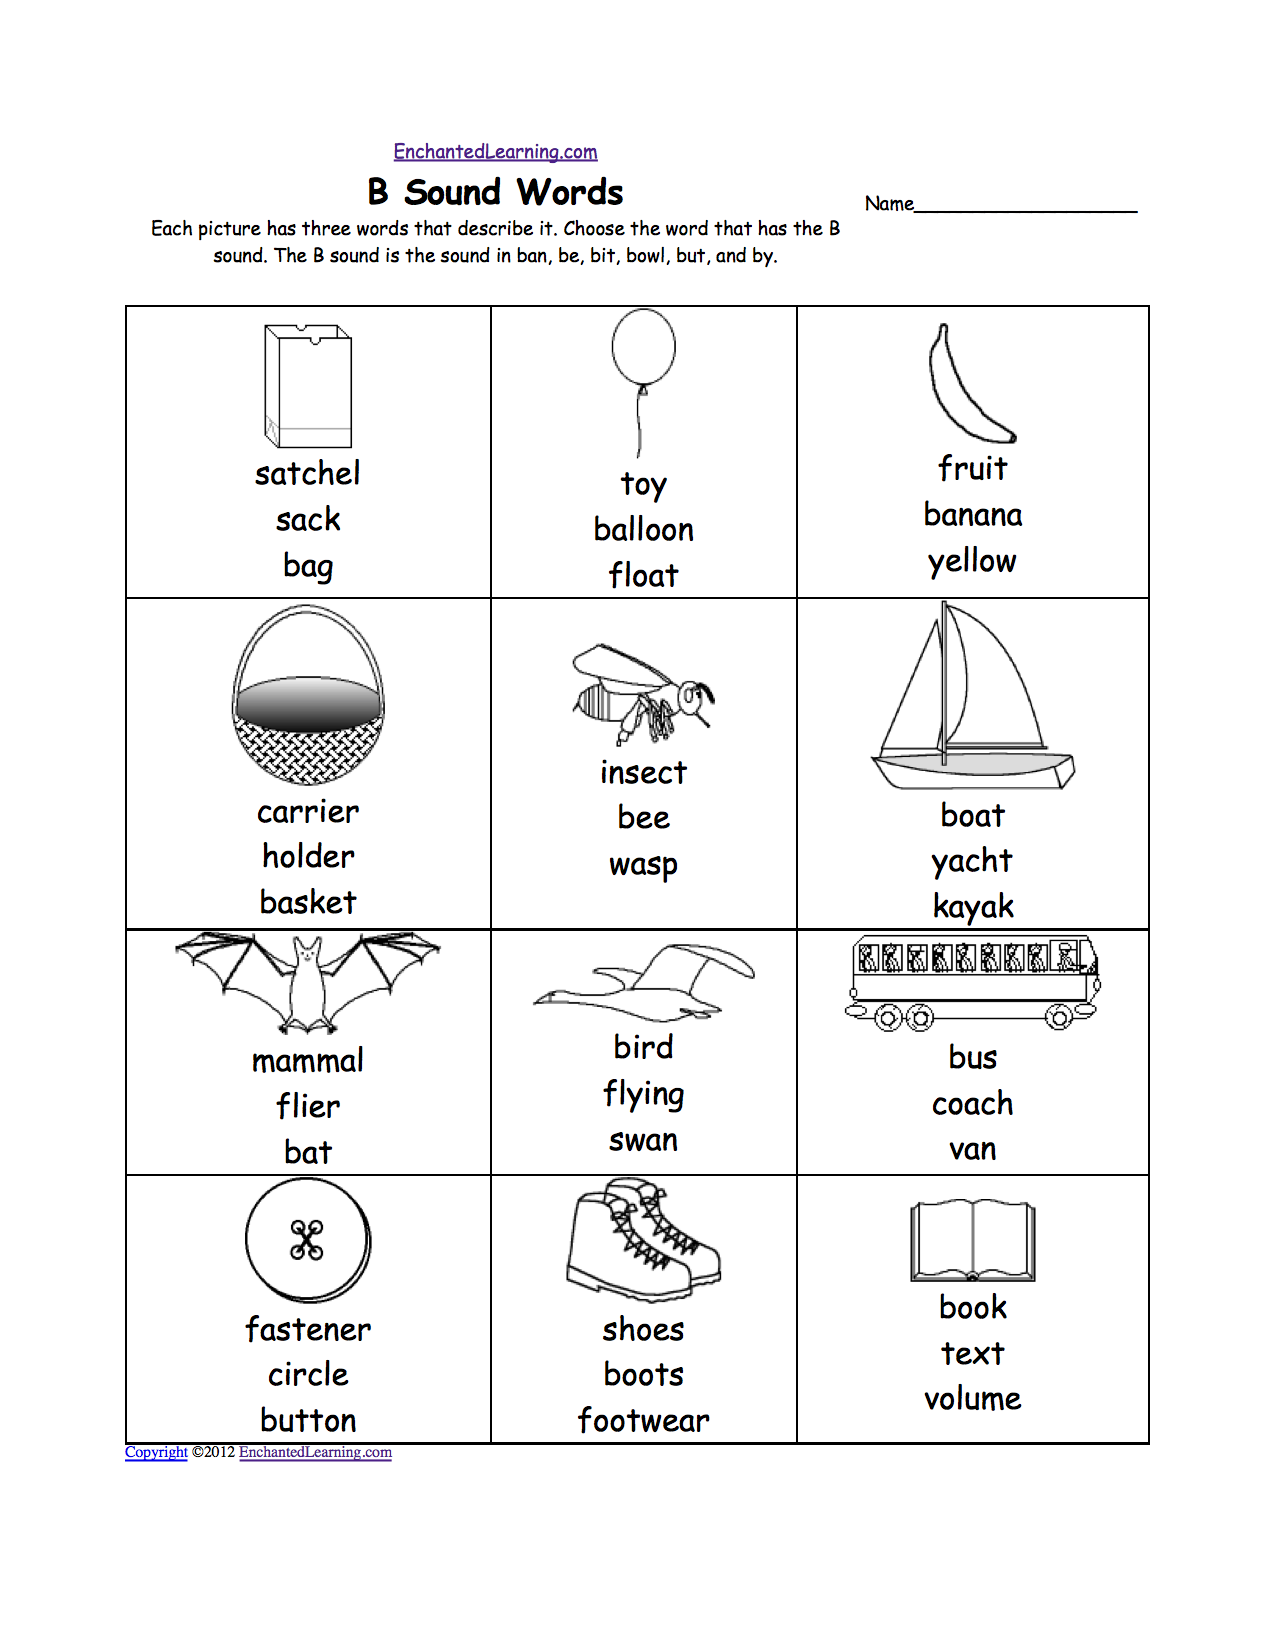 Aldiablosus  Pleasant Phonics Worksheets Multiple Choice Worksheets To Print  With Outstanding Quotbquot Sound Phonics Worksheet Multiple Choice Each Picture Has Three Words That Describe It Choose The Word That Has A Quotbquot Sound The Quotbquot Sound Is The Sound  With Agreeable Maths Grid Method Worksheet Also Software Worksheet In Addition Worksheets Distributive Property And Ing Suffix Worksheets As Well As Worksheets On Time For Grade  Additionally Addition And Subtraction Word Problems Worksheets St Grade From Enchantedlearningcom With Aldiablosus  Outstanding Phonics Worksheets Multiple Choice Worksheets To Print  With Agreeable Quotbquot Sound Phonics Worksheet Multiple Choice Each Picture Has Three Words That Describe It Choose The Word That Has A Quotbquot Sound The Quotbquot Sound Is The Sound  And Pleasant Maths Grid Method Worksheet Also Software Worksheet In Addition Worksheets Distributive Property From Enchantedlearningcom